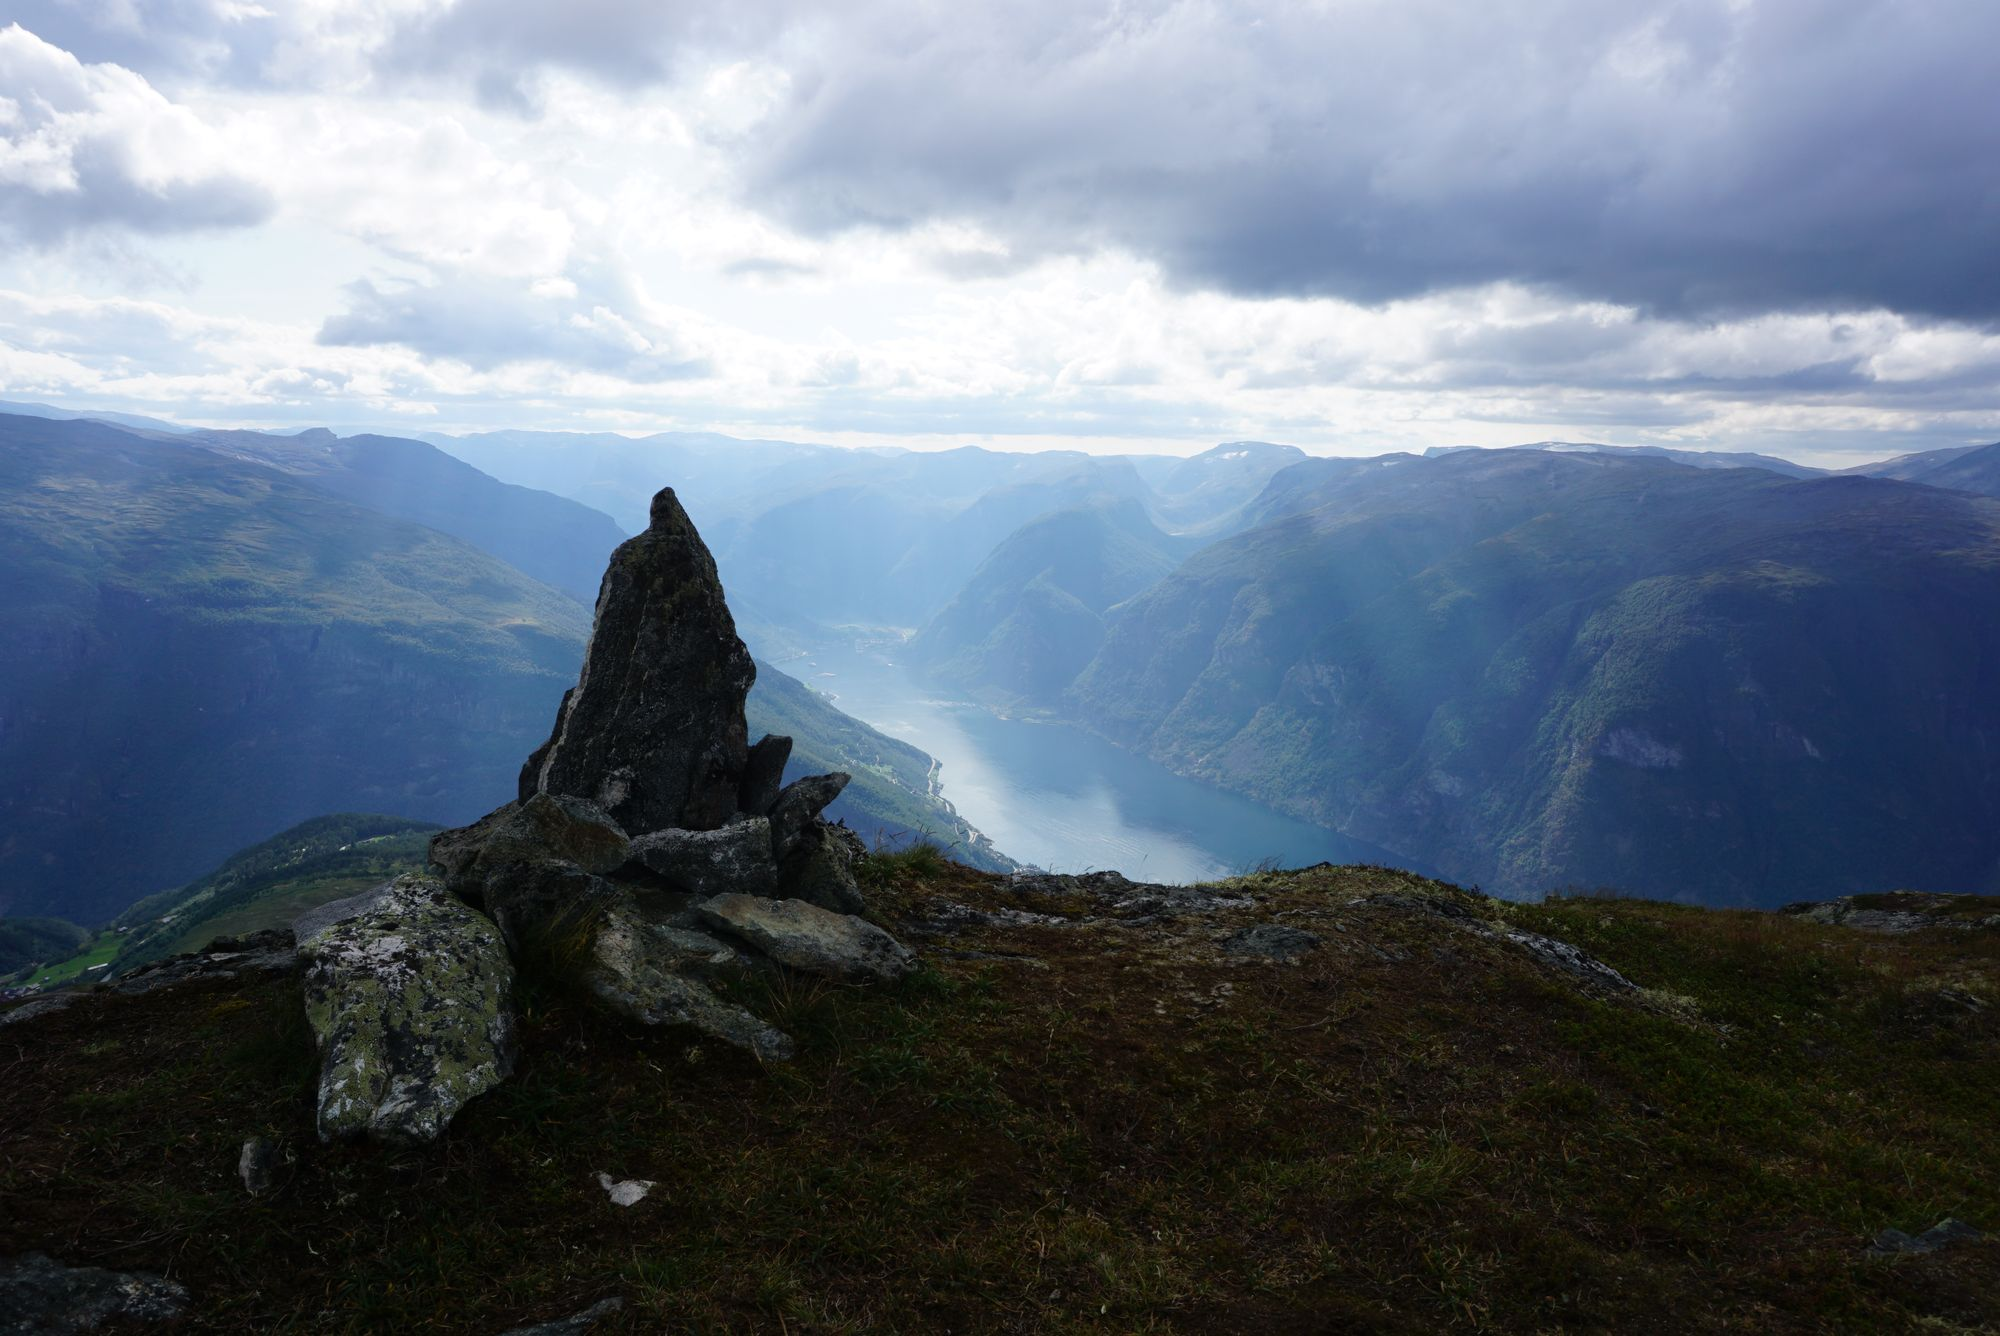 Aurlandsfjord view from the way down with rocks